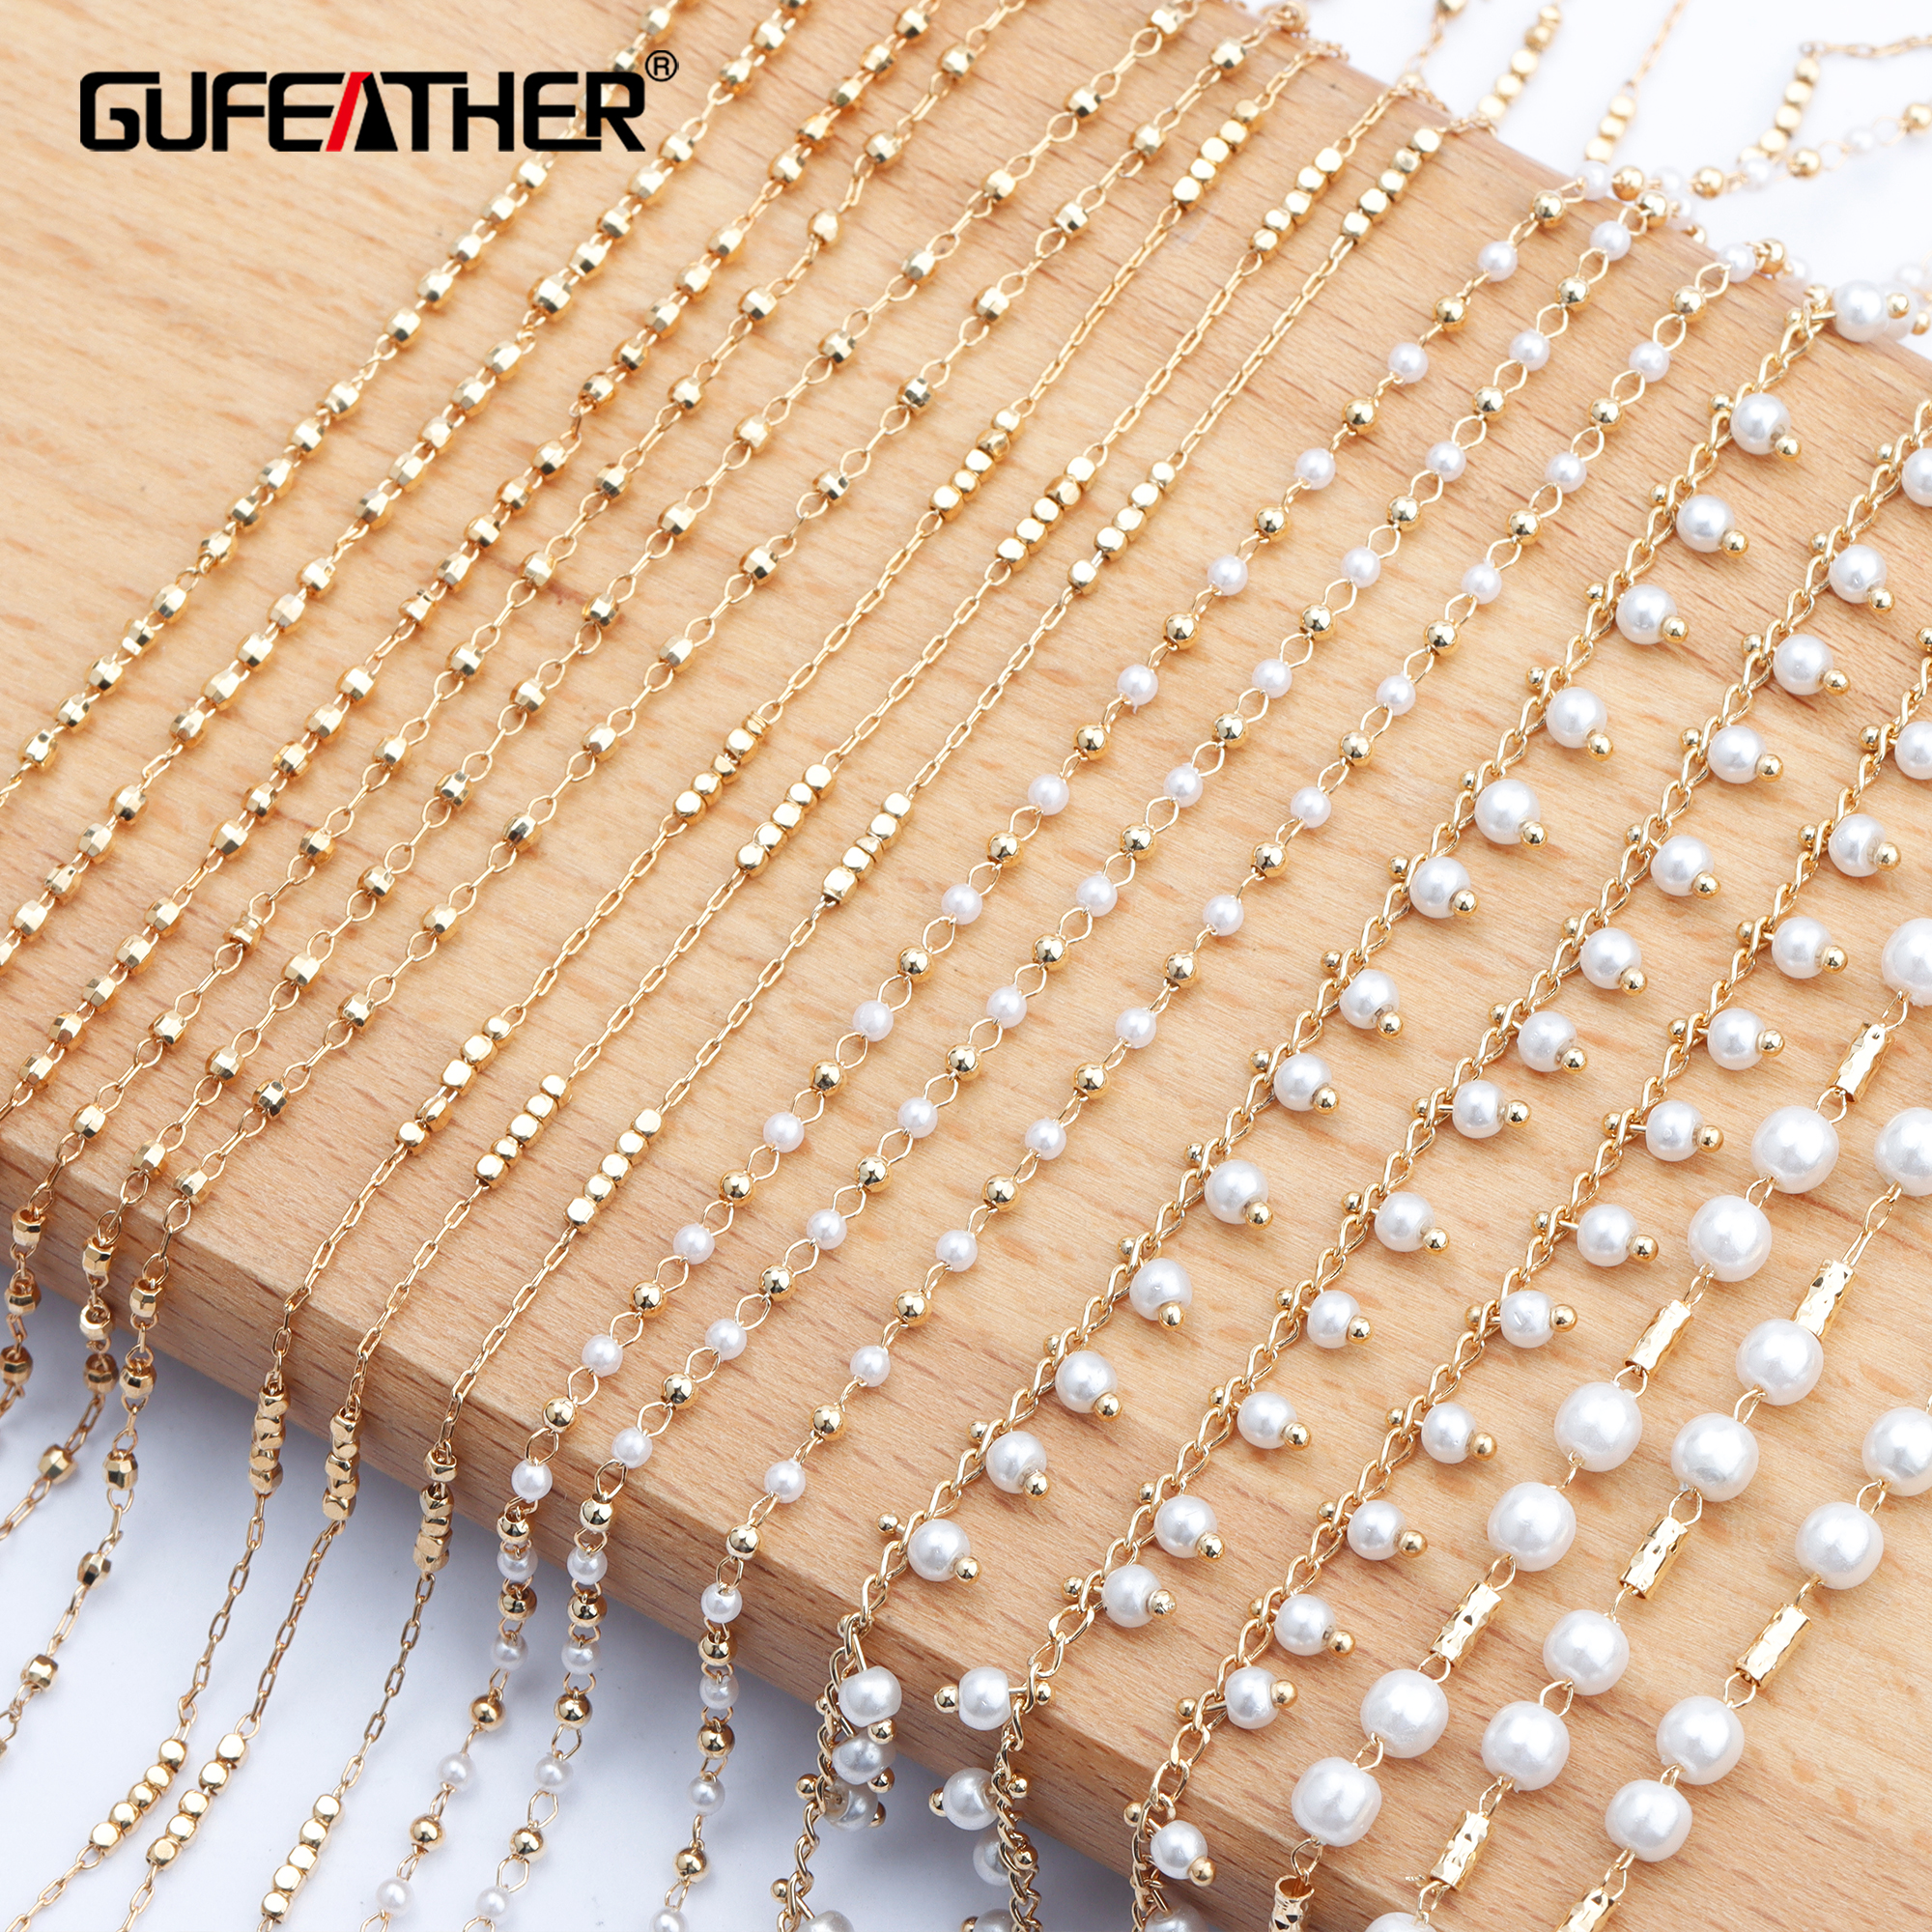 GUFEATHER C79,jewelry Accessories,diy Chain,18k Gold Plated,charms,pearl,hand Made,diy Chain Necklace,jewelry Making,1m/lot